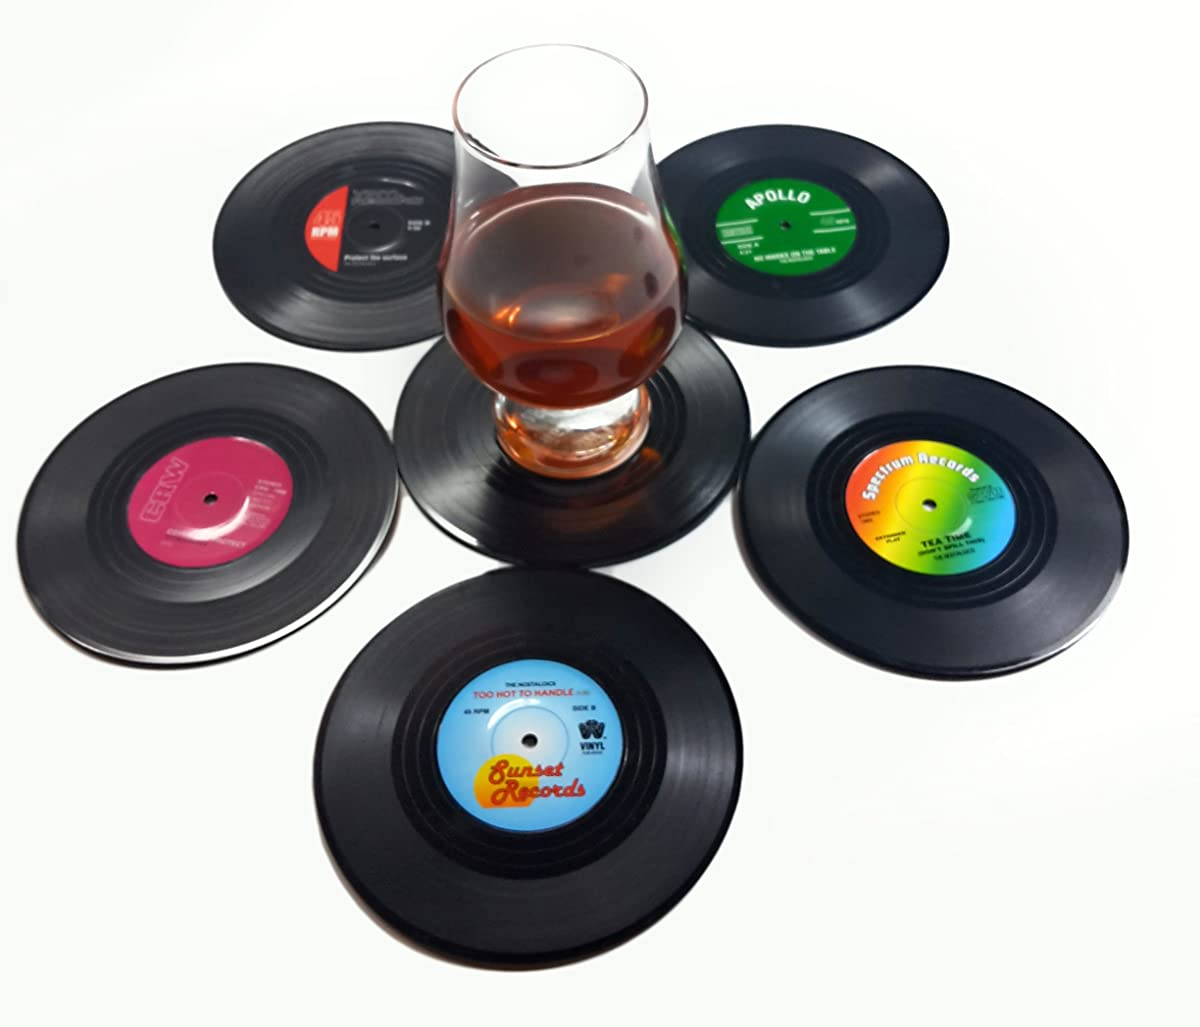 Set of 6 Colorful Vinyl Record Disk Coasters With Funny Labels - Perfect for Music Lovers